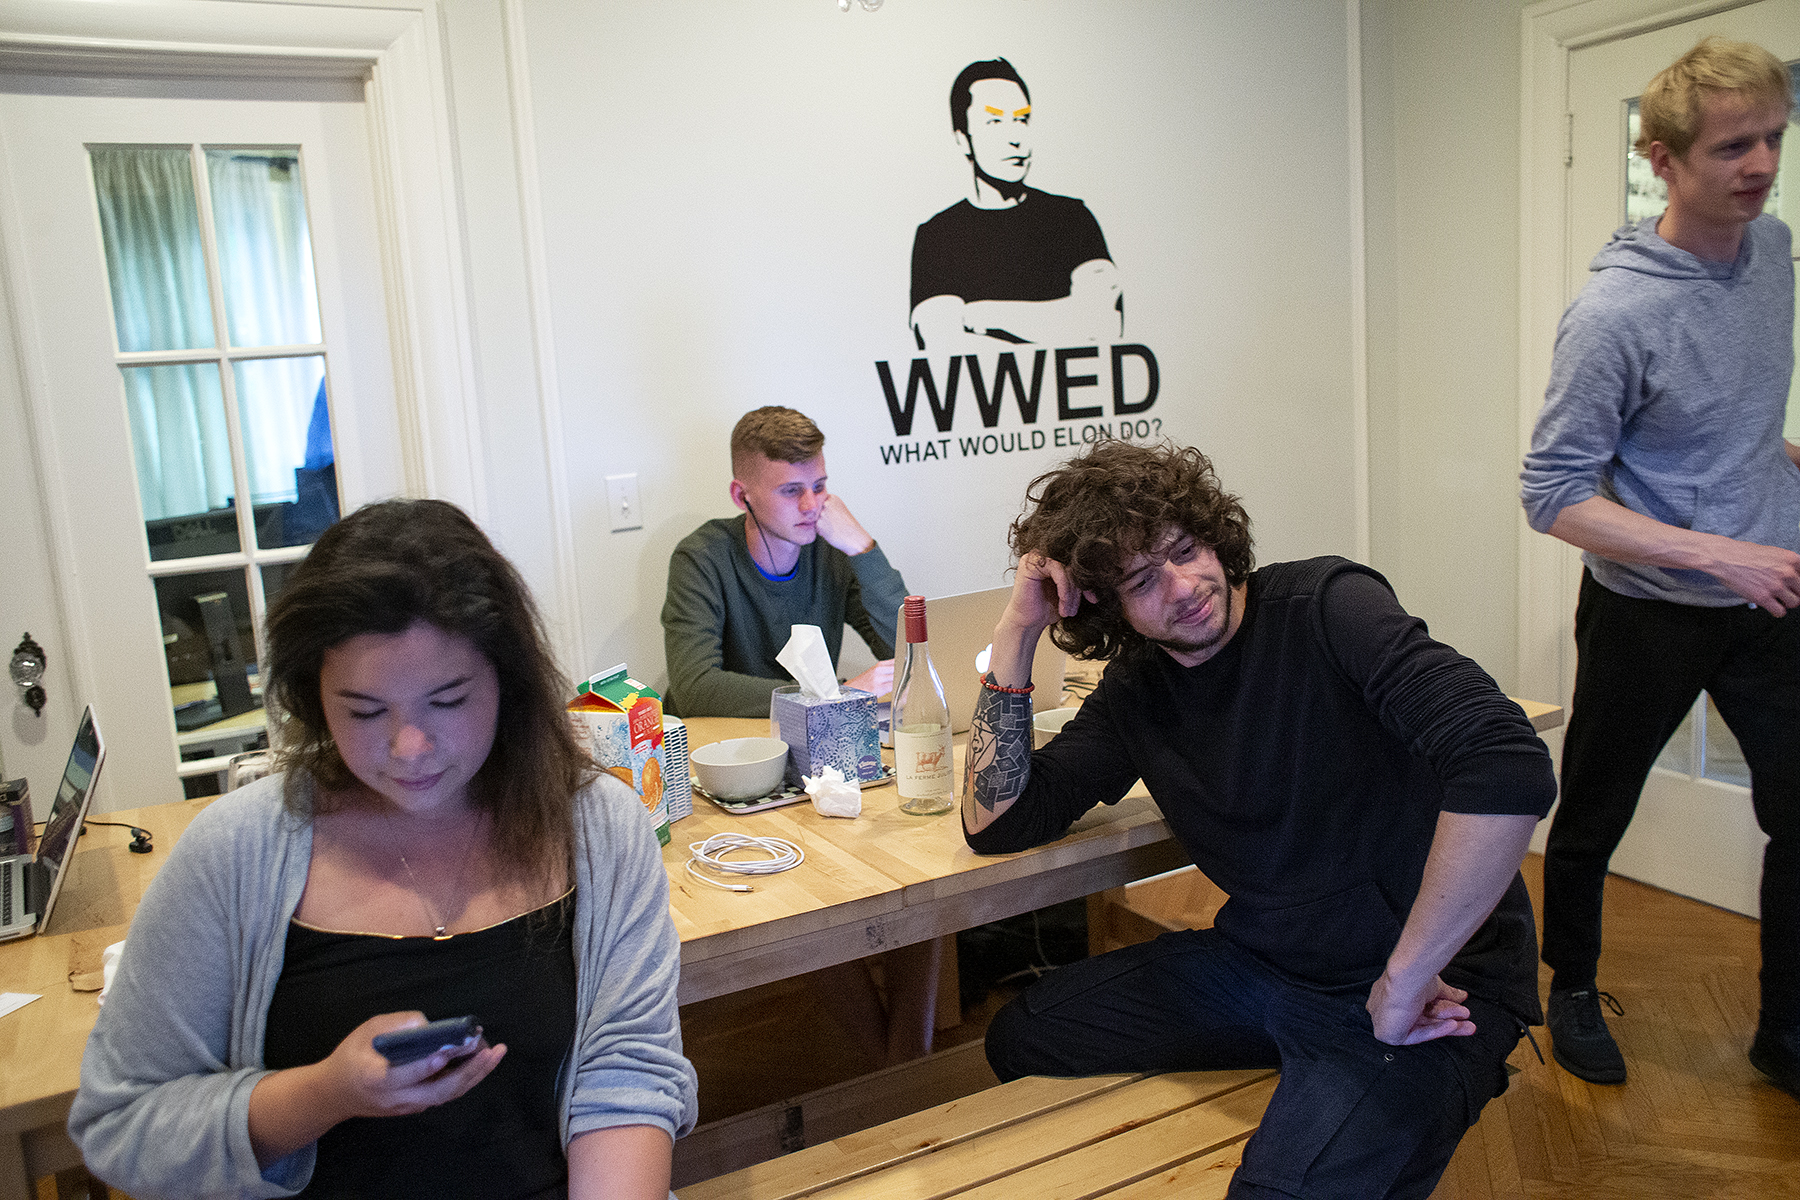 Bryce Fuller, Carol Yaginuma and Vladimir Dihovichyny (left to right)work and socialize in the dining room at Startup Embassy in Palo Alto, Calif., on Thursday, May 31, 2018. Fuller, a rising senior at University of Texas - Austin, is staying at the house for the summer while interning at the quantum computing company QC Ware. Yaginuma, from Brazil, is living in the house while doing continuing studies at Stanford in AI and programming. Karlov and Dihovichyny were living in the house while working on an app called Drop. Startup Embassy is a live and work entrepreneurial residence, sometimes referred to as a hacker house. Around 15 people are able to live in the house at one time. Guests, who are accepted after submitting an application with their entrepreneurial credentials, can stay for a few days, weeks or up to a few months at the house. CONTACTS: Bryce Fuller BGF024@gmail.com214-558-1086Carol Yaginumacarolinay@al.insper.edu.brMike KarlovMike.karlov@me.com